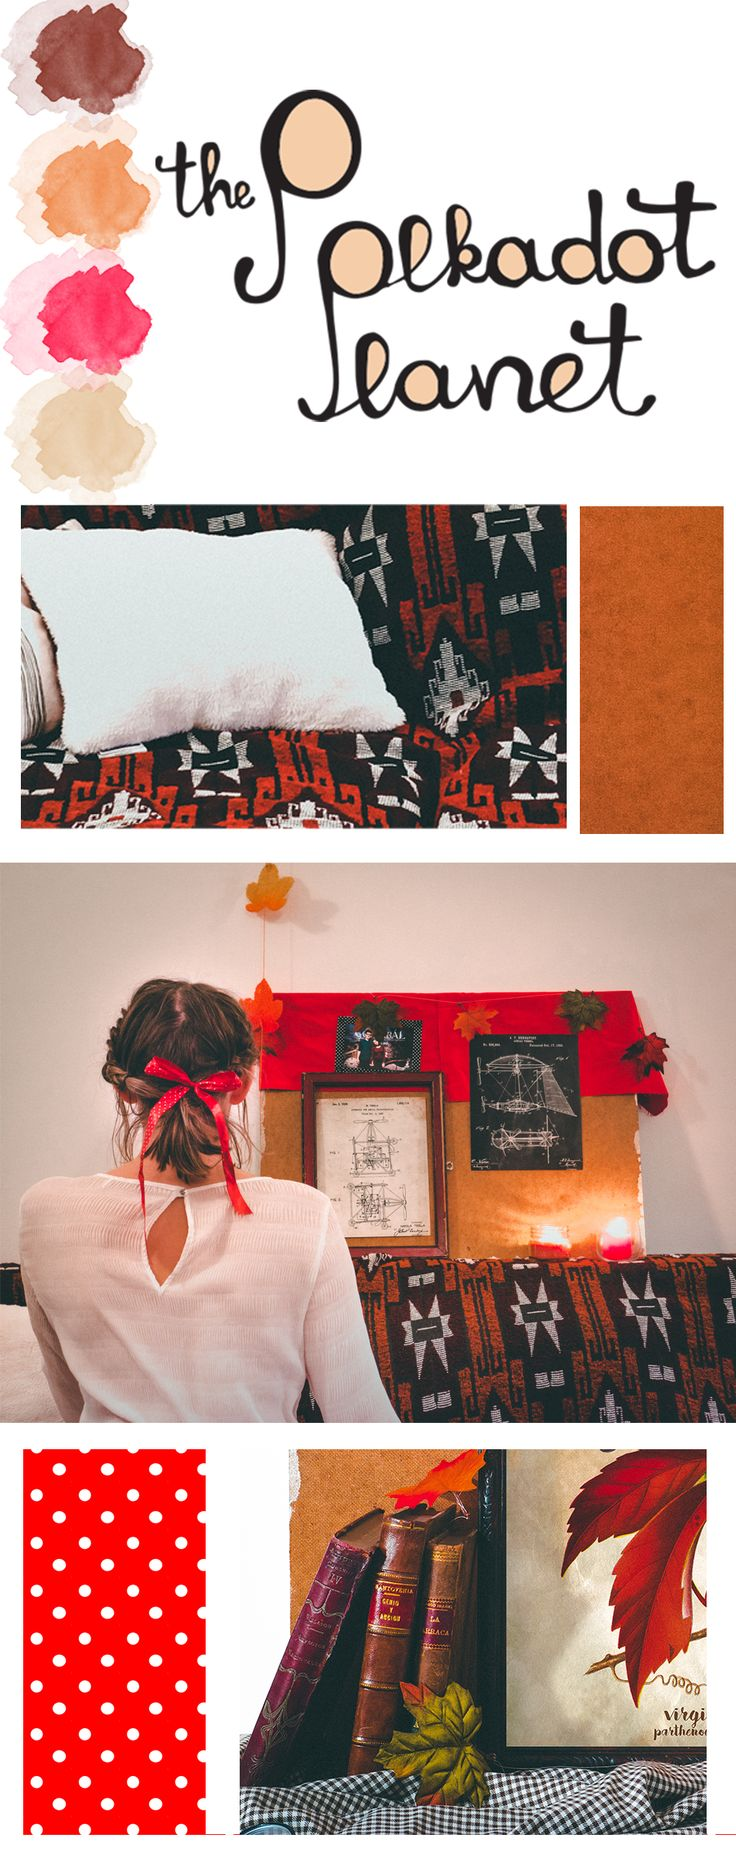 Deep reds, dark oranges, the last steps in fall. My favorite hair-bow and pumpkin pie scented candles, just the right mood for a dark November afternoon.